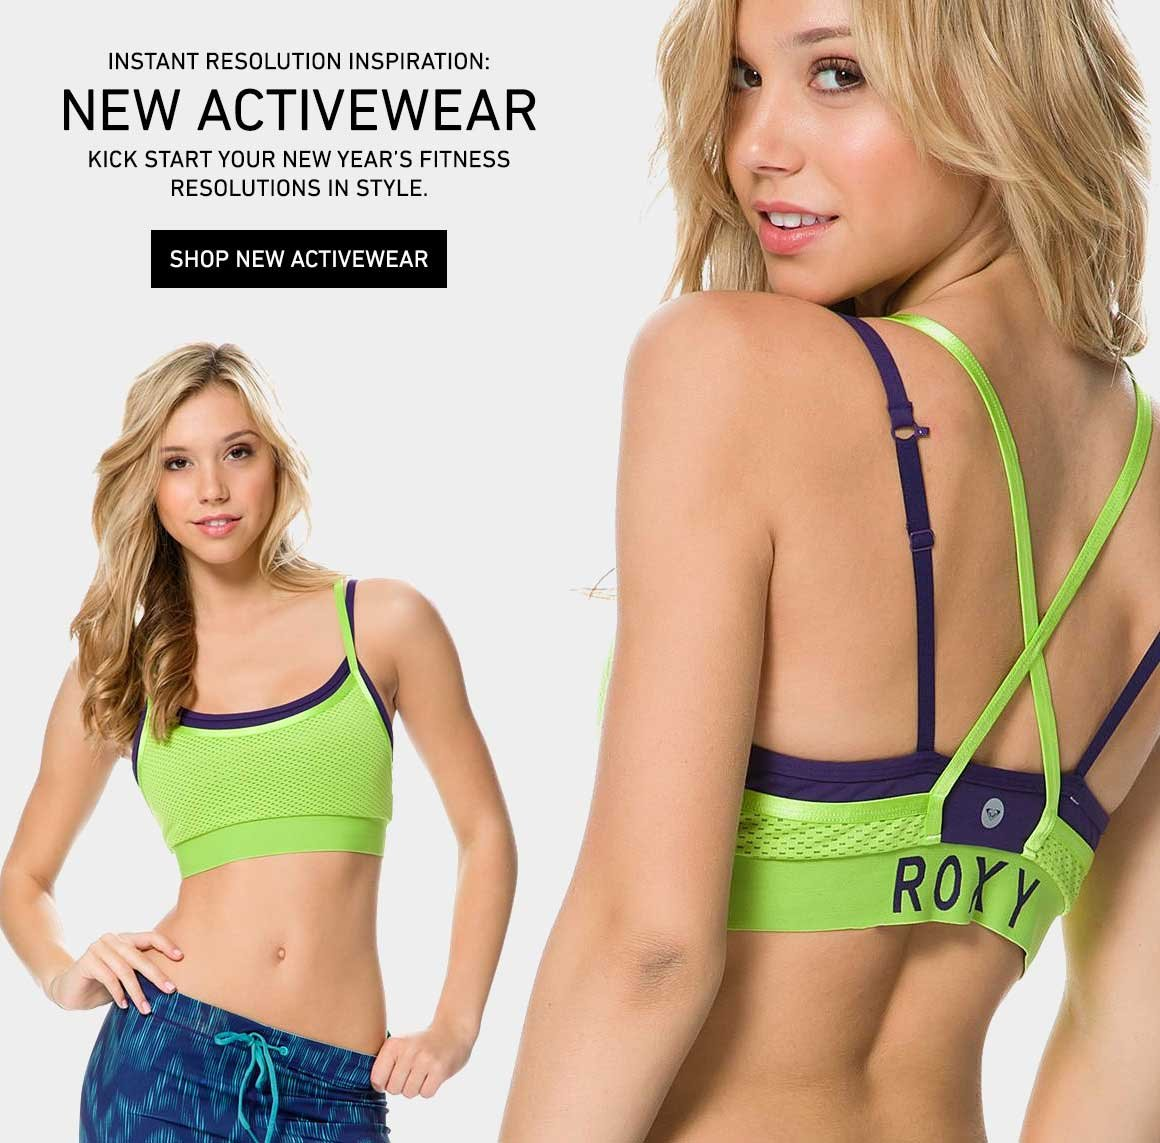 Instant Resolution Inspo: Shop New Activewear